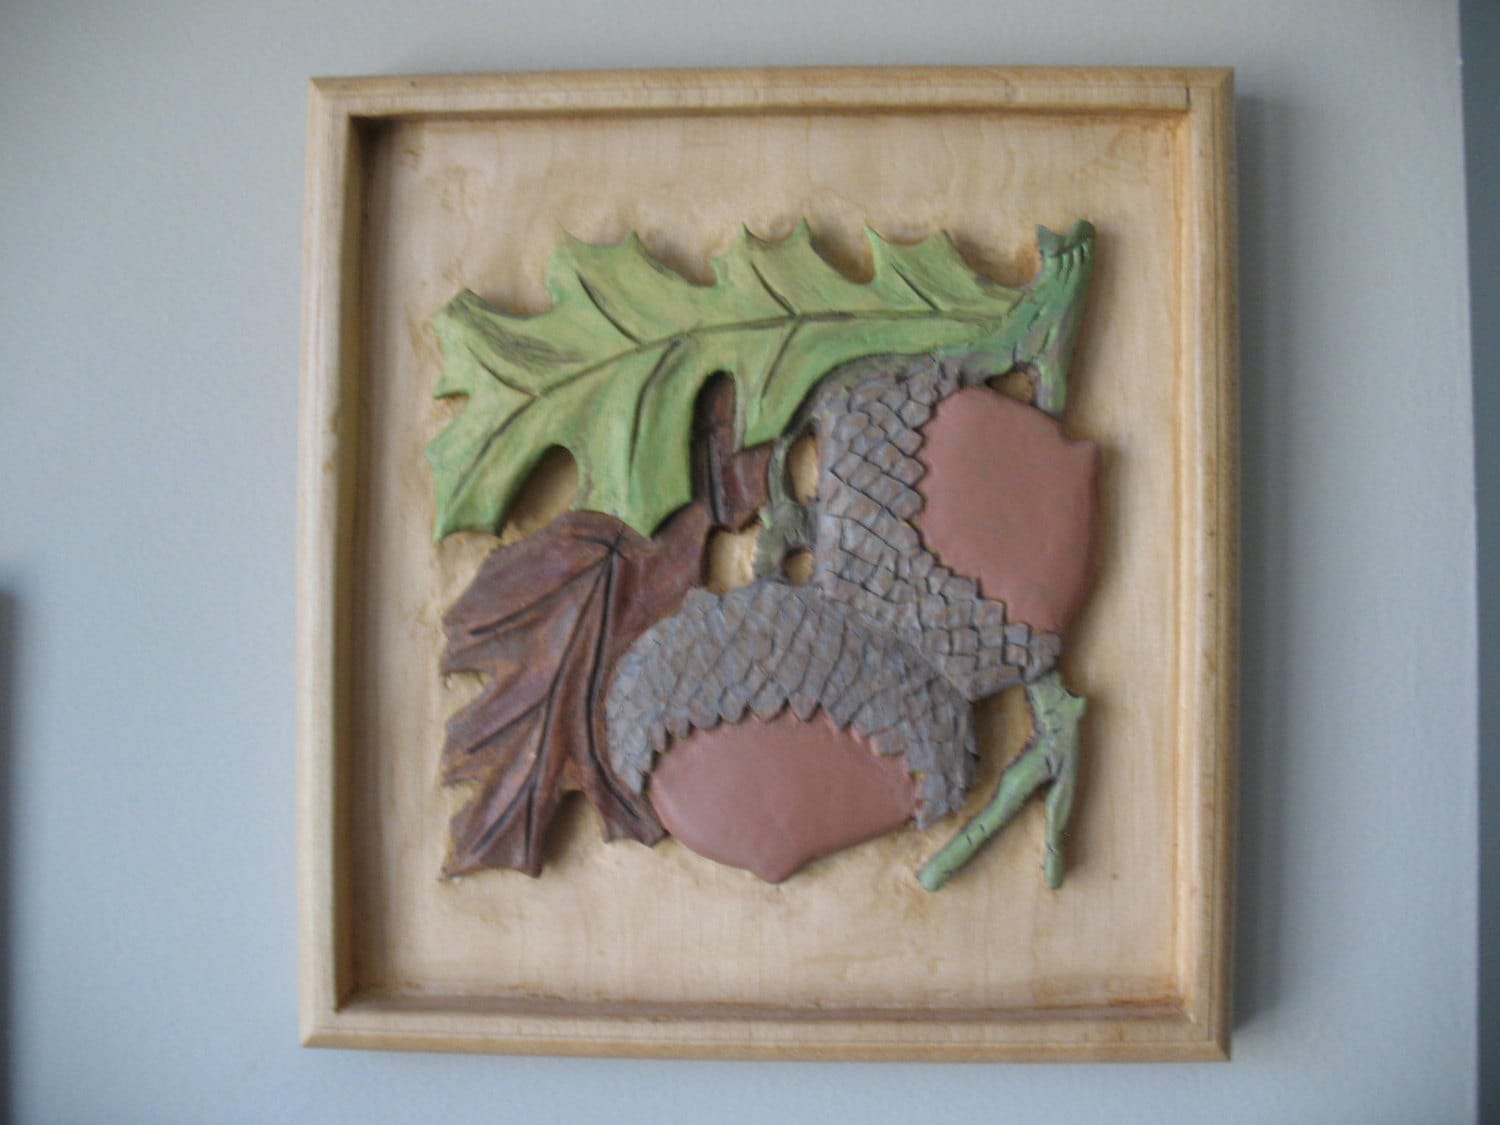 Relief carving of an oak leaf and acorn cluster